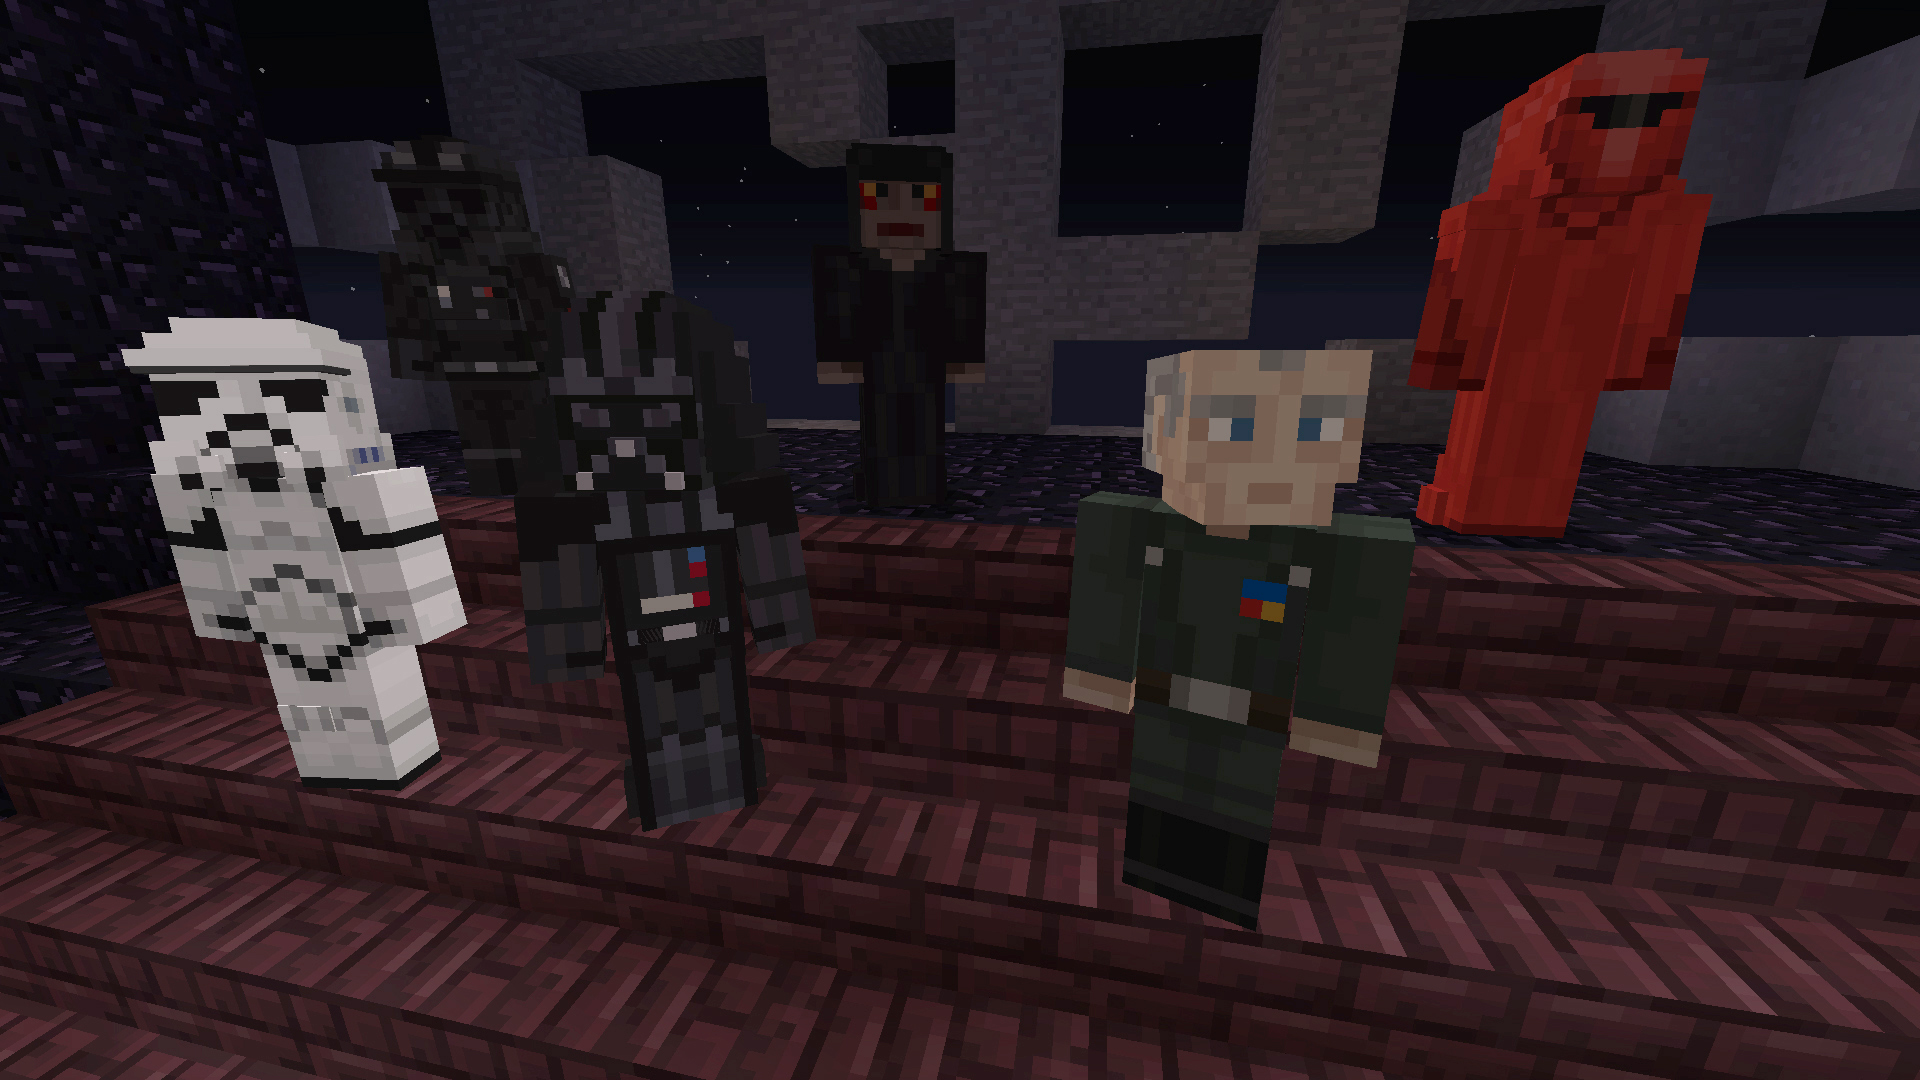 minecraft xbox 360 how to get star wars texture pack